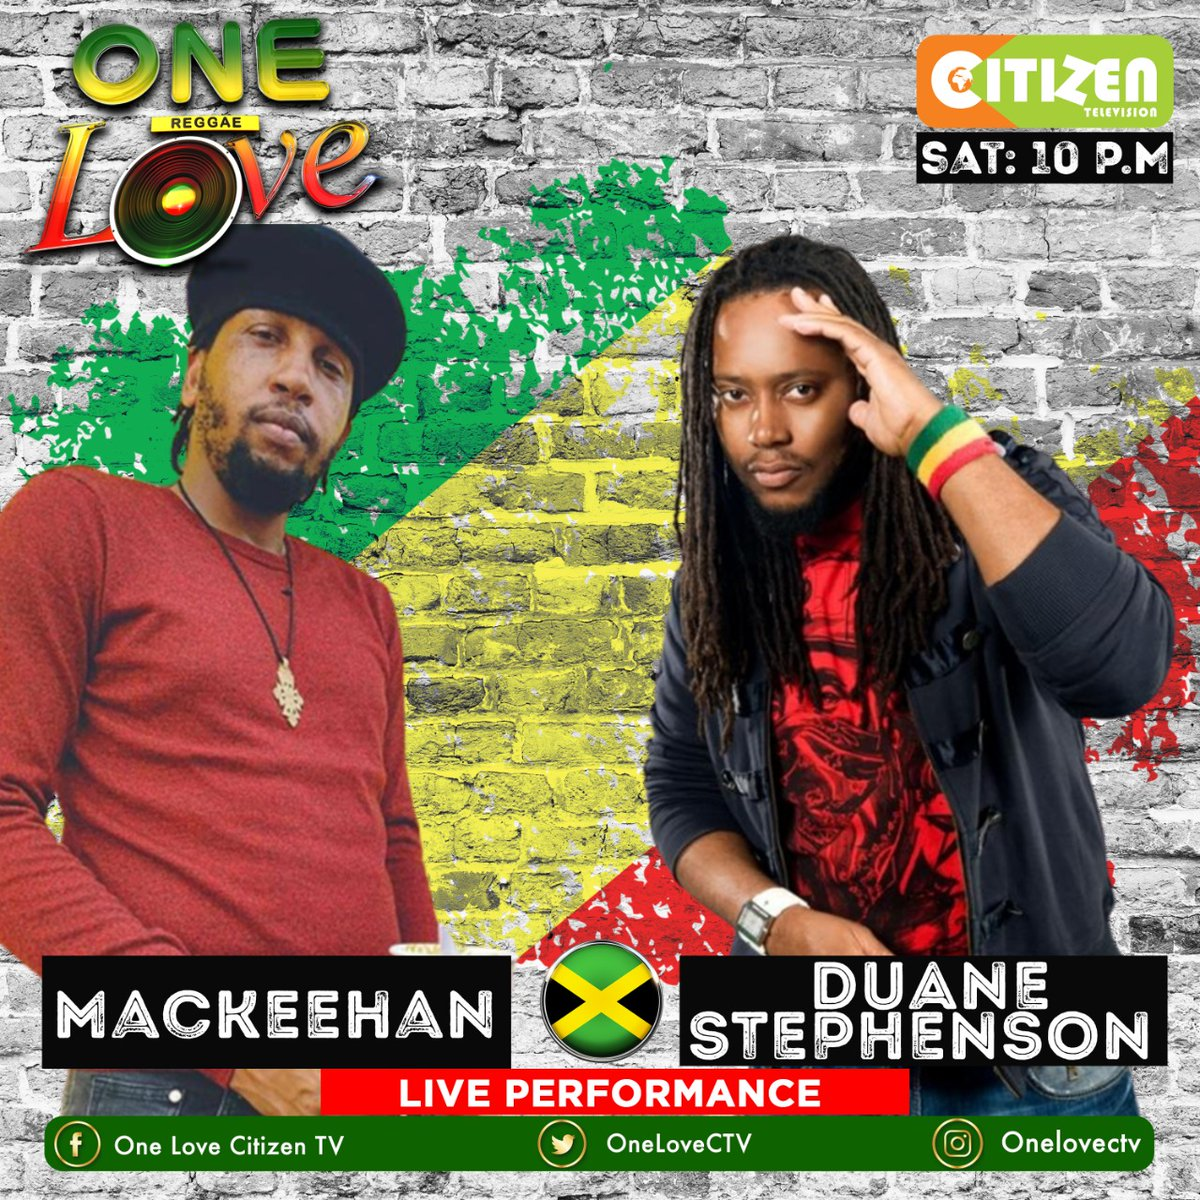 And finally, we will have 2 great artists @Mackeehan and @FromAugustTown who will be performing live on the best reggae and dancehall show #OneLove  Make sure to catch them live tonight on @citizentvkenya from 10pm until 1am  To miss tonight's show will be a diss pic.twitter.com/O2wjEoCLVg